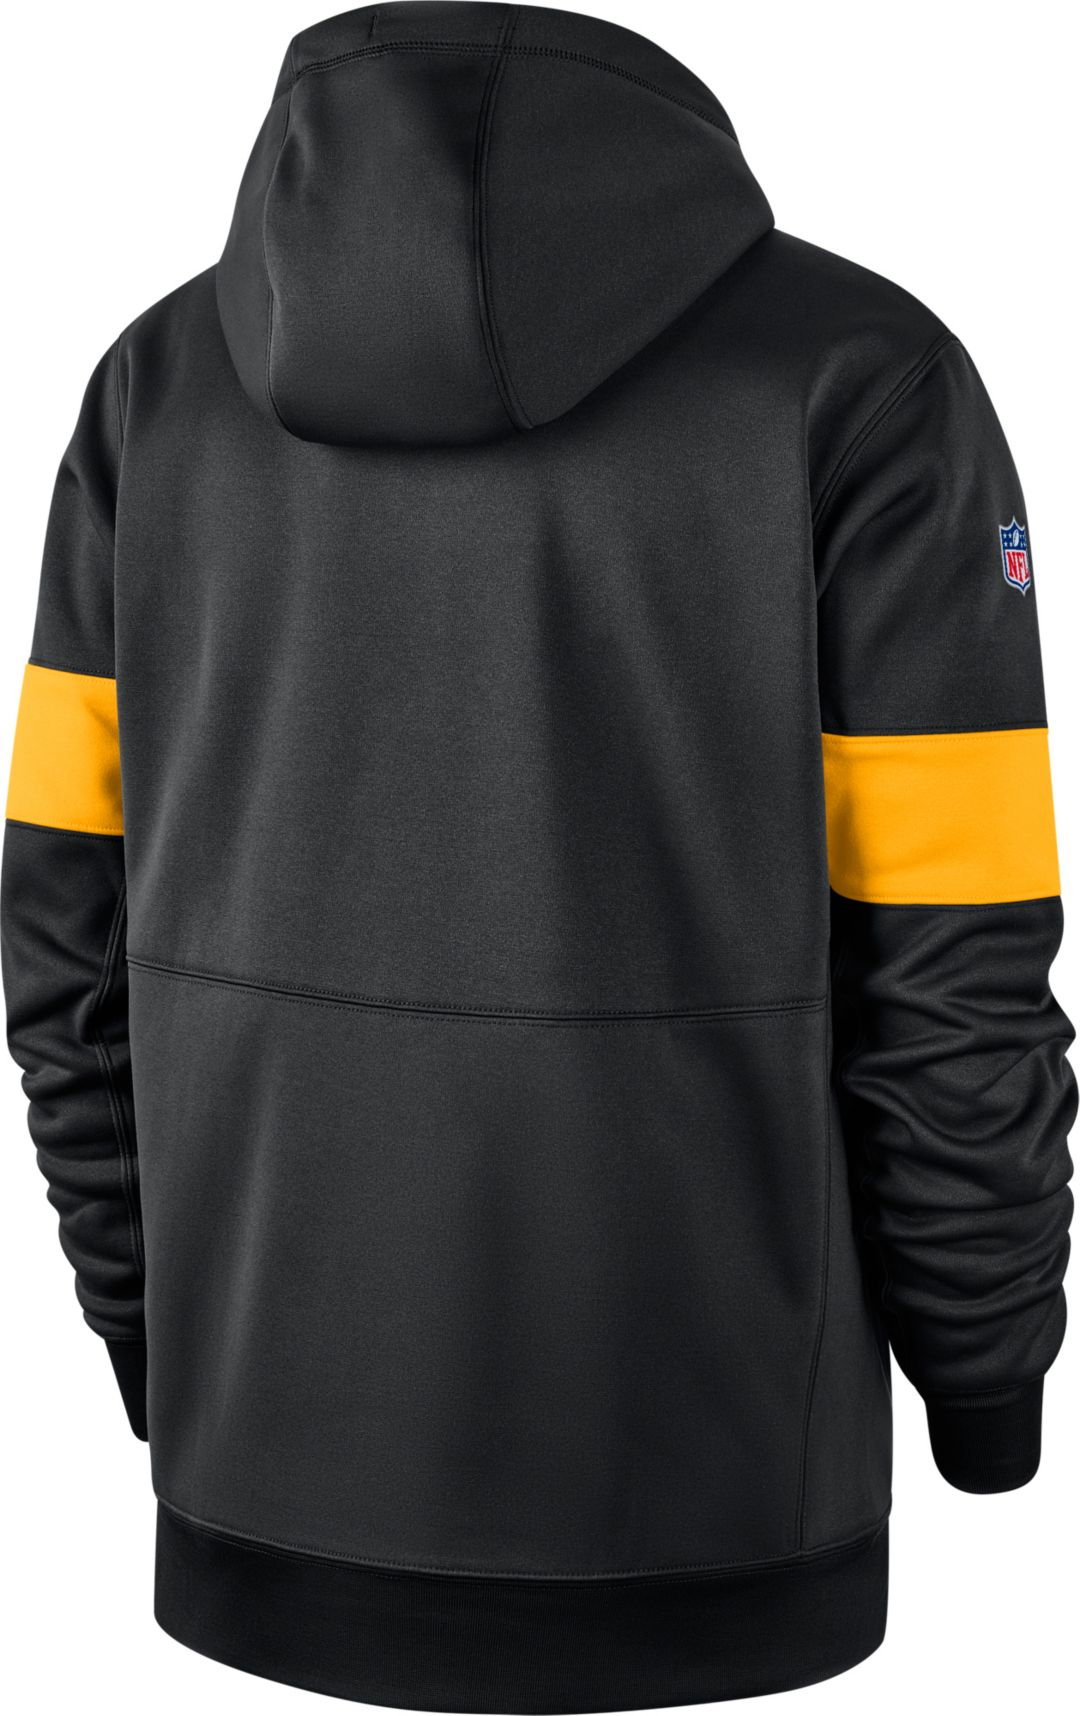 separation shoes 73c82 ec5cf Nike Men's Pittsburgh Steelers Sideline Therma-FIT Black Full-Zip Hoodie